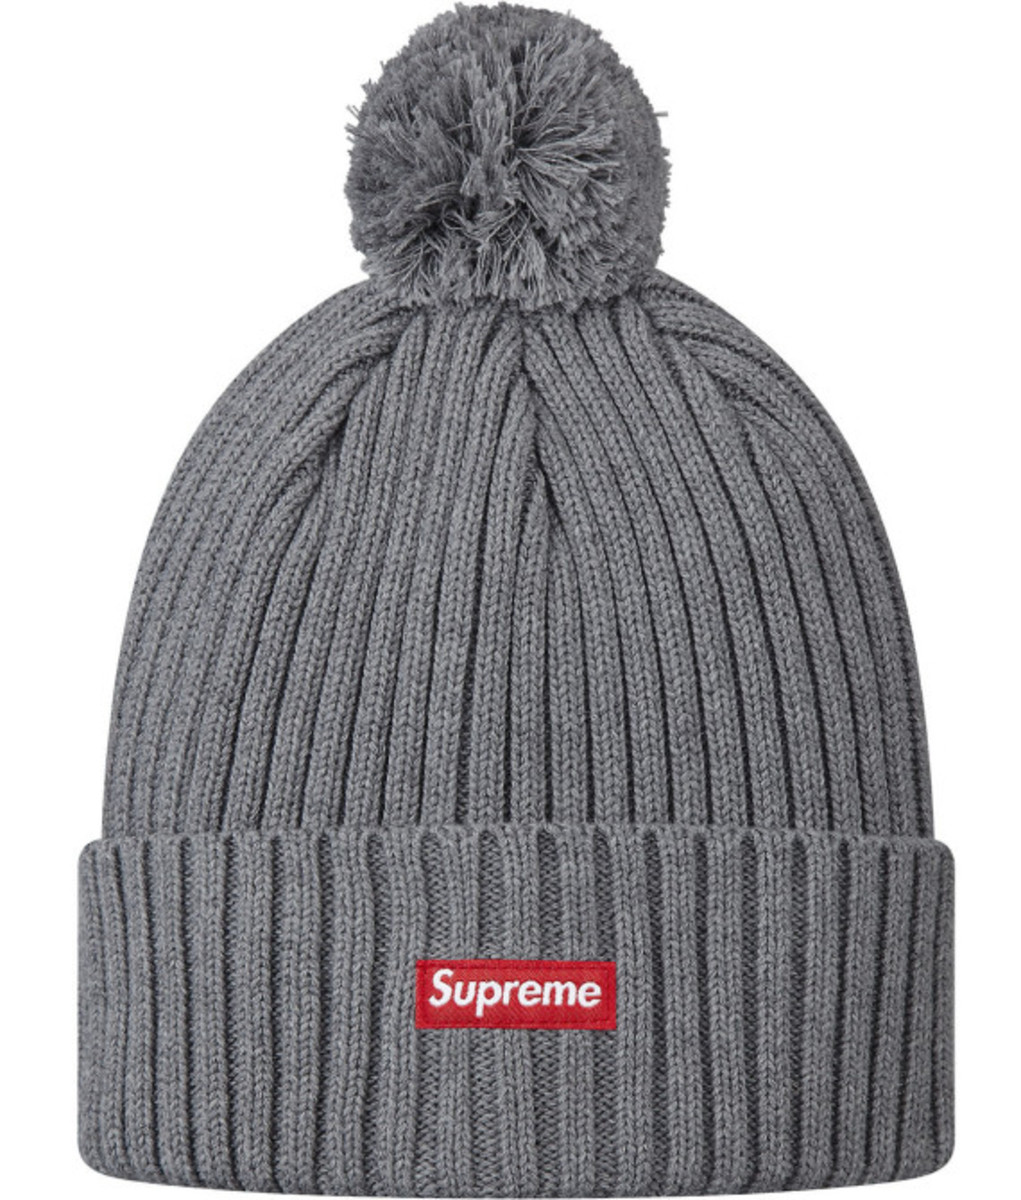 Supreme Ribbed Beanies with Small Box Logo  a1060c21a63